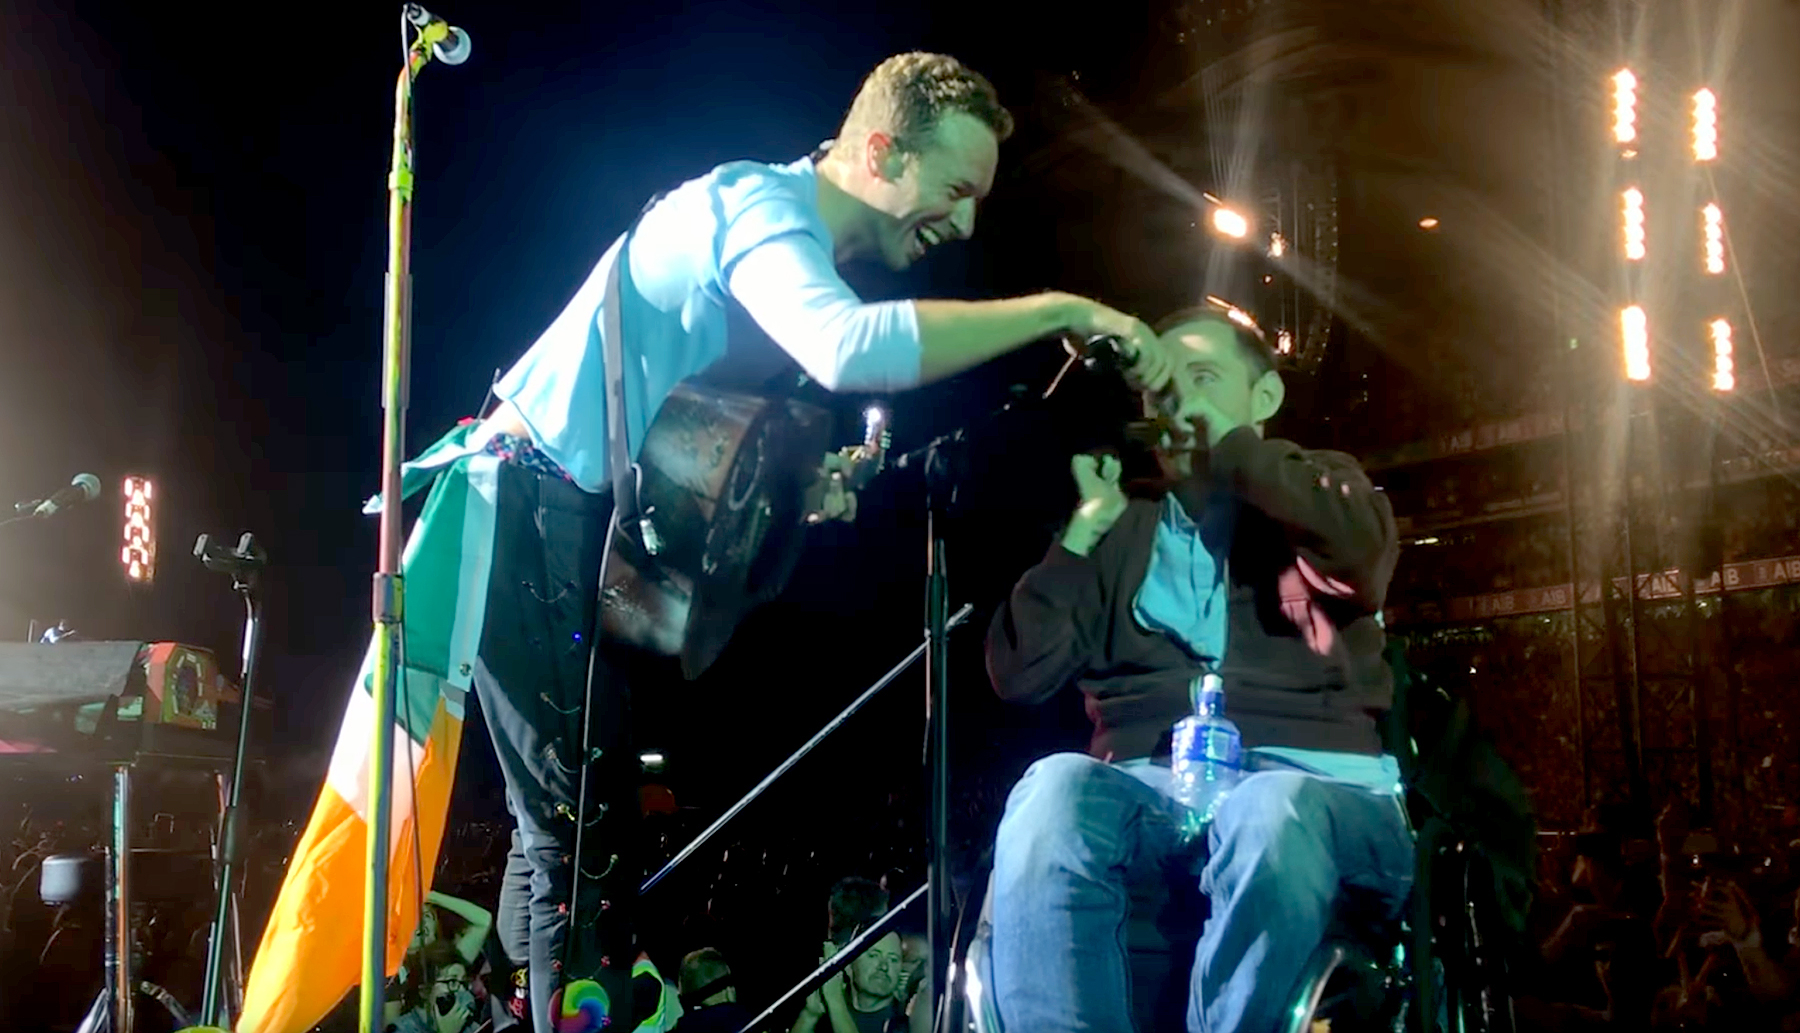 Chris Martin and fan.